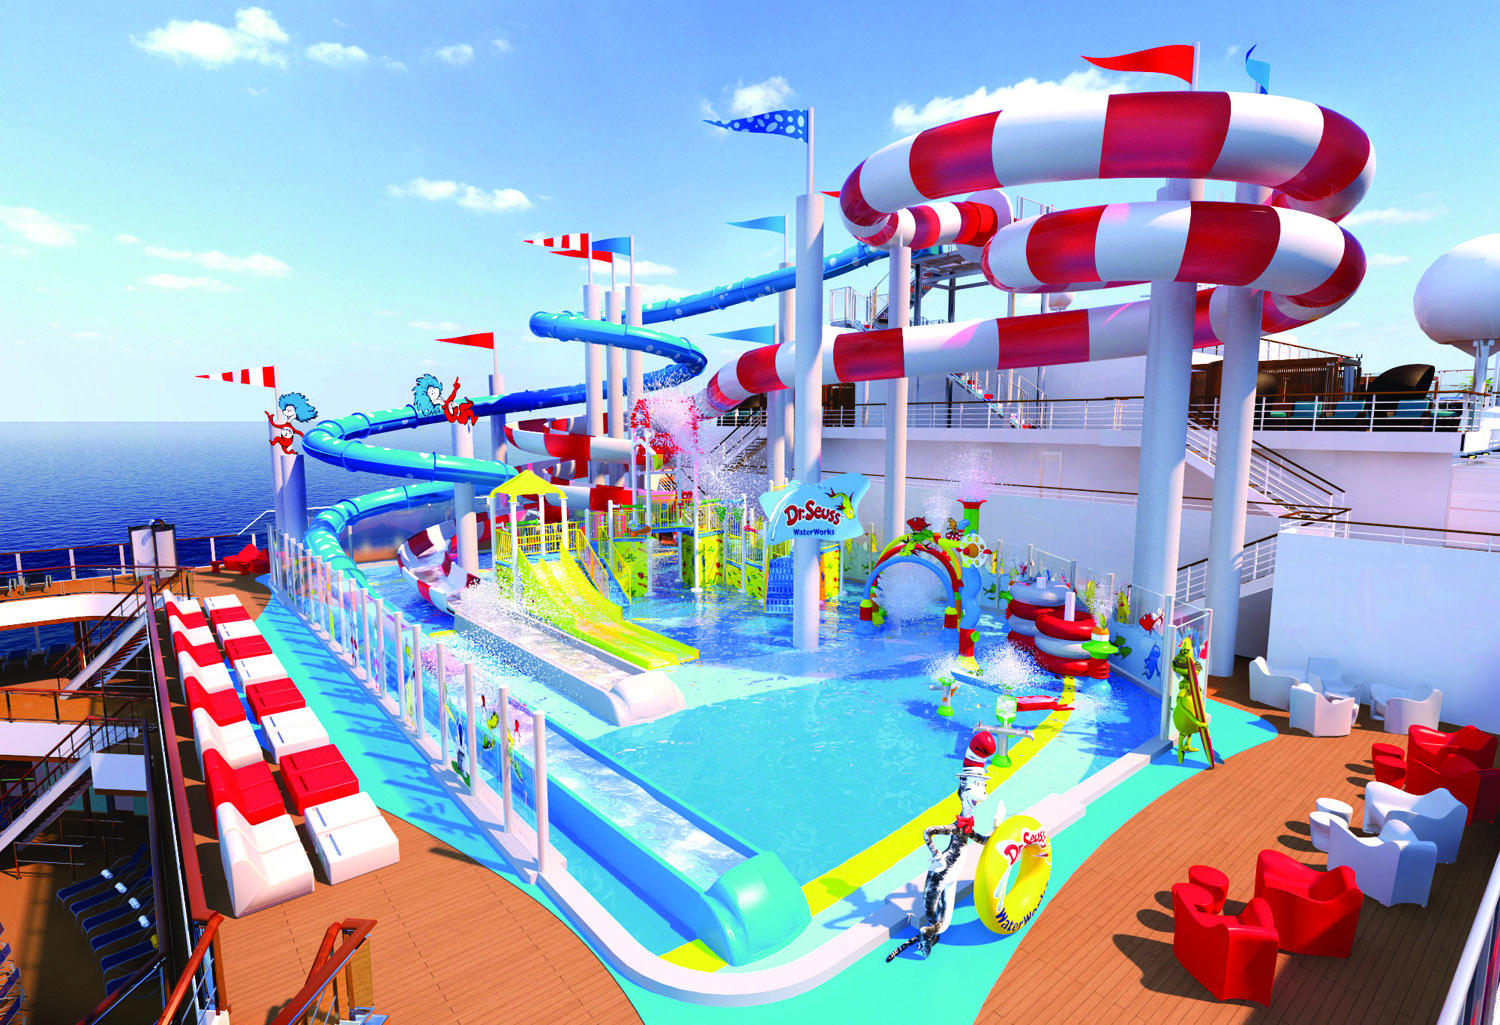 Dr. Seuss-themed water park will debut on board the Carnival Horizon.